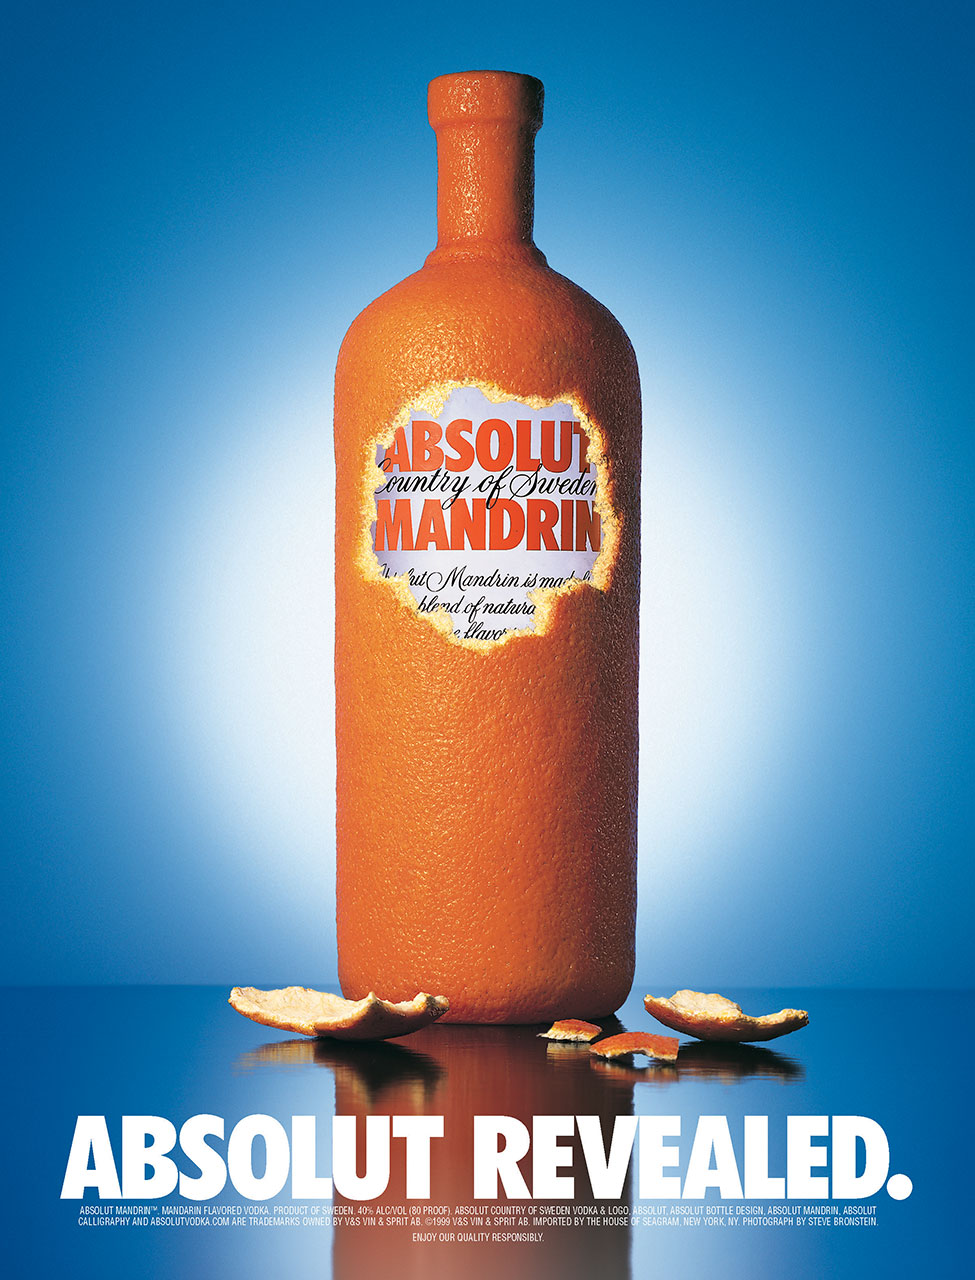 Print ad campaign for Absolut Vodka released to major consumer magazines nationwide.